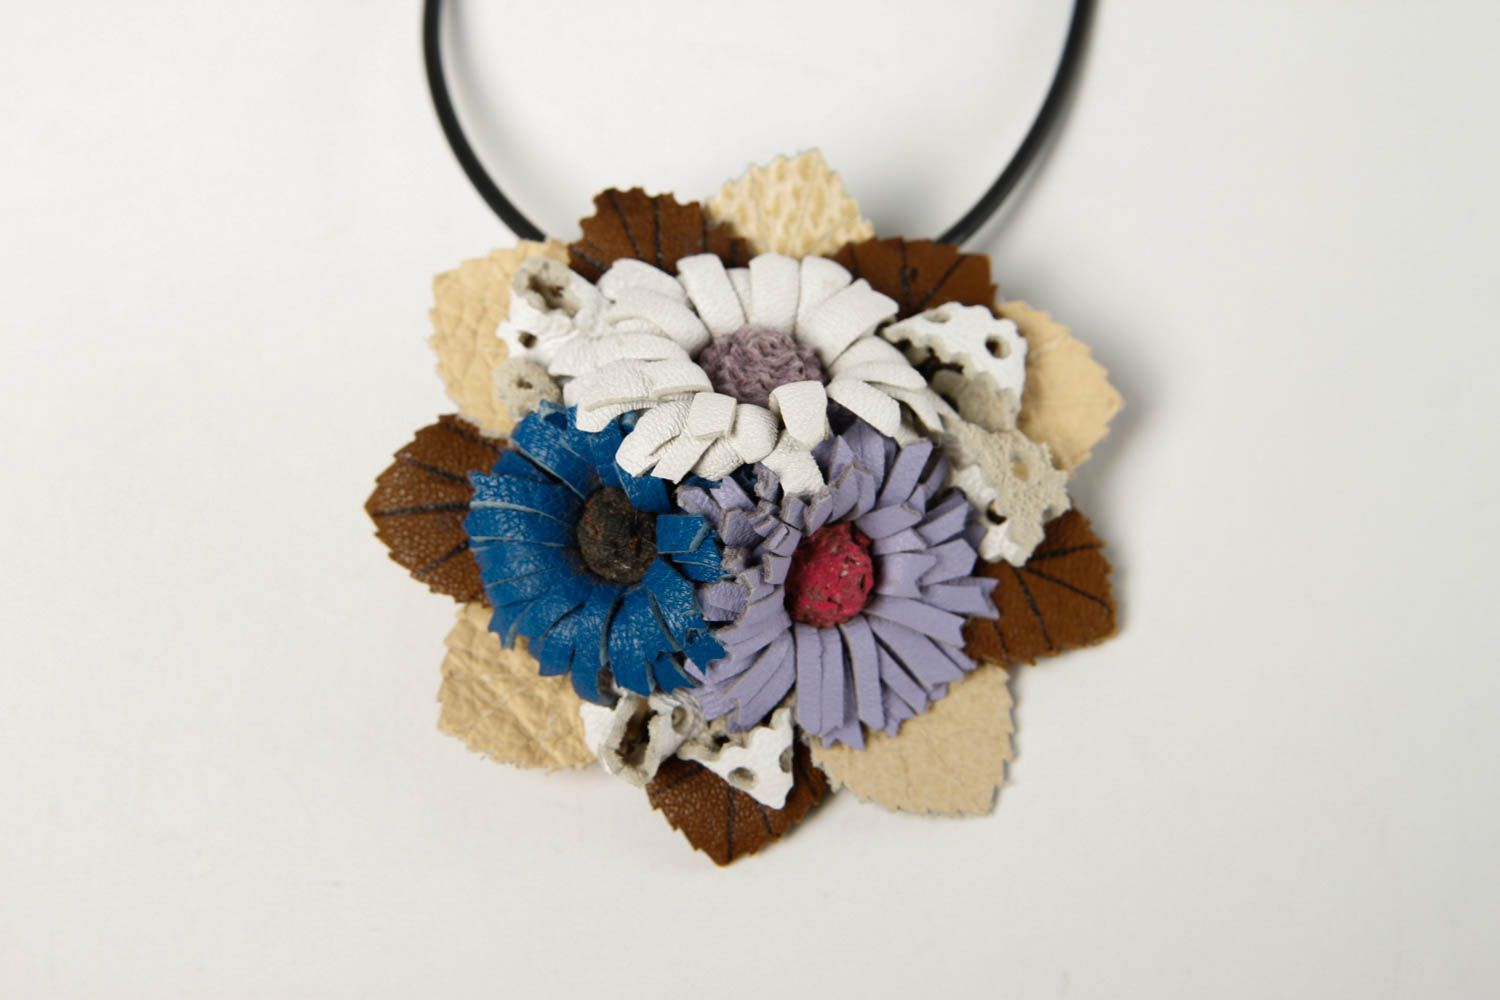 leather necklaces Handmade necklace flower brooch leather goods designer accessories gifts for her - MADEheart.com